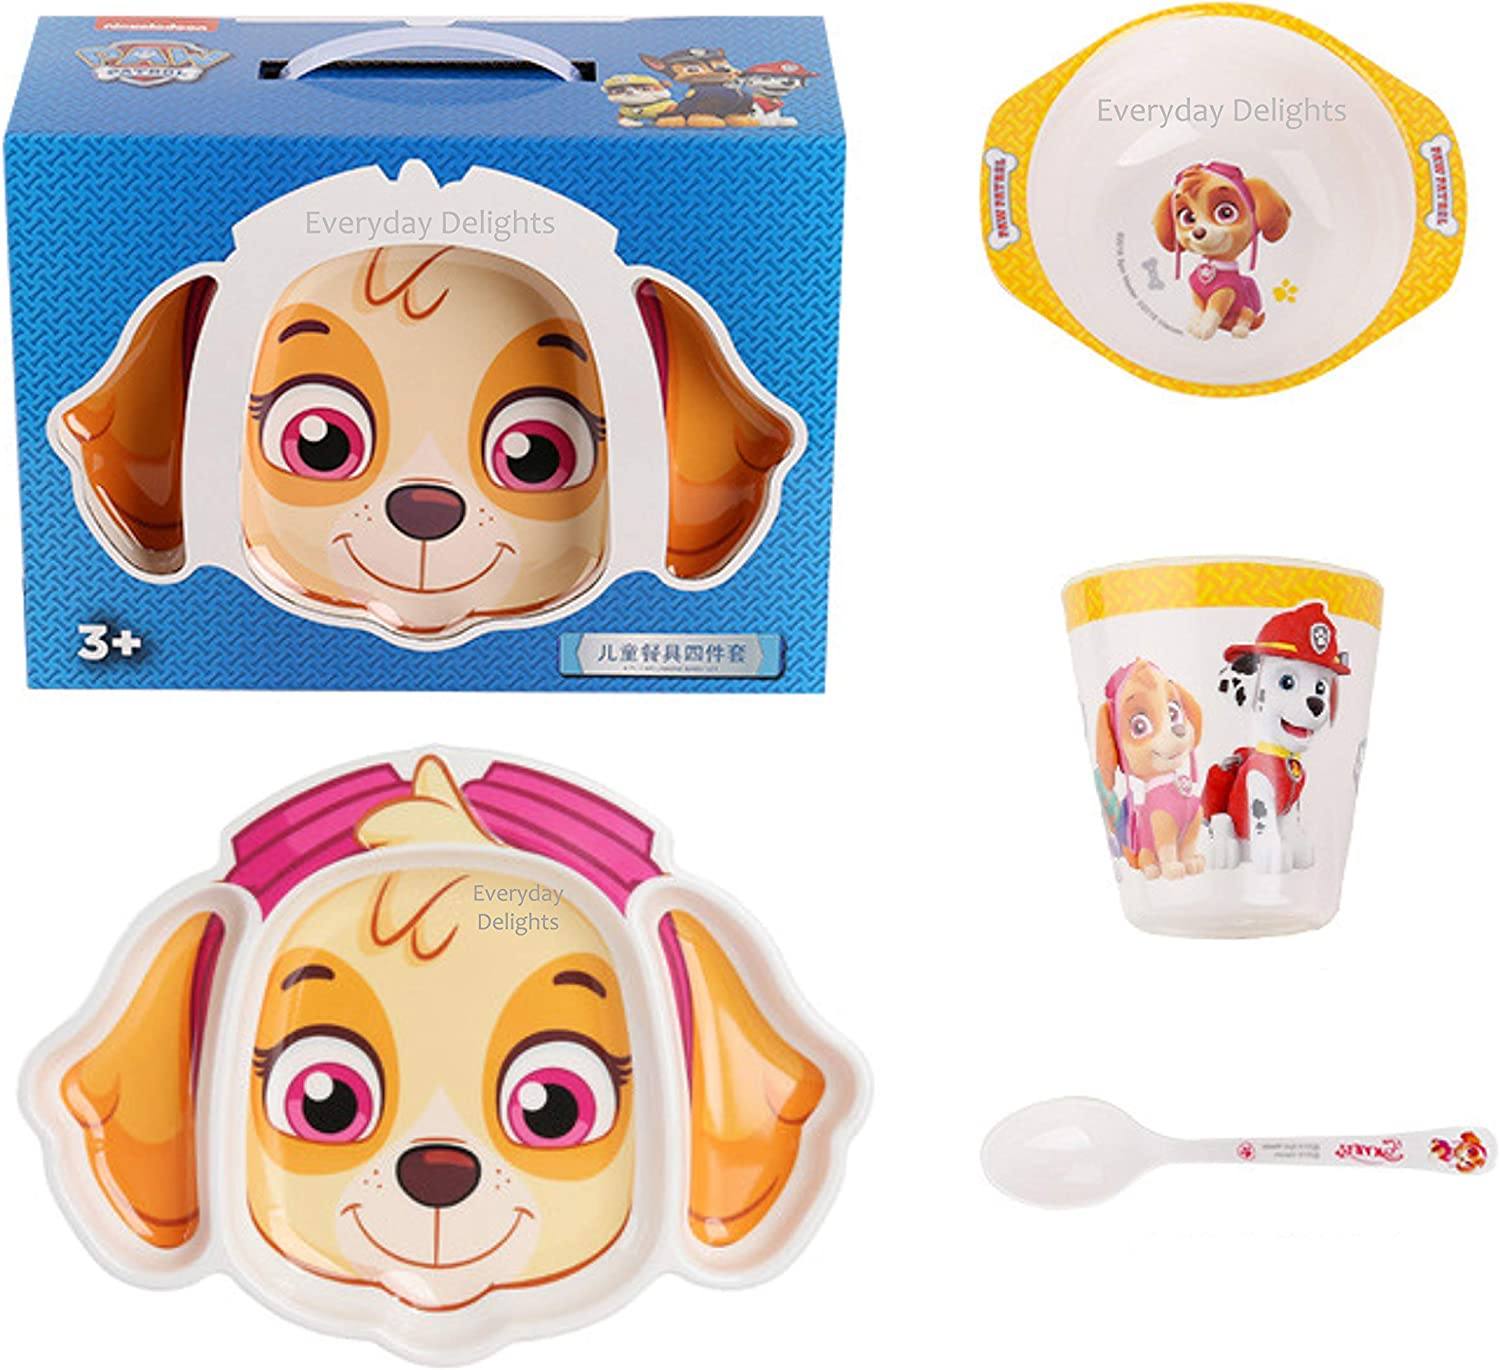 Paw Patrol Skye Dinnerware Flatware Meal Set for Girls Toddlers Kids Children – Plate Bowl Cup Spoon, 4 pieces